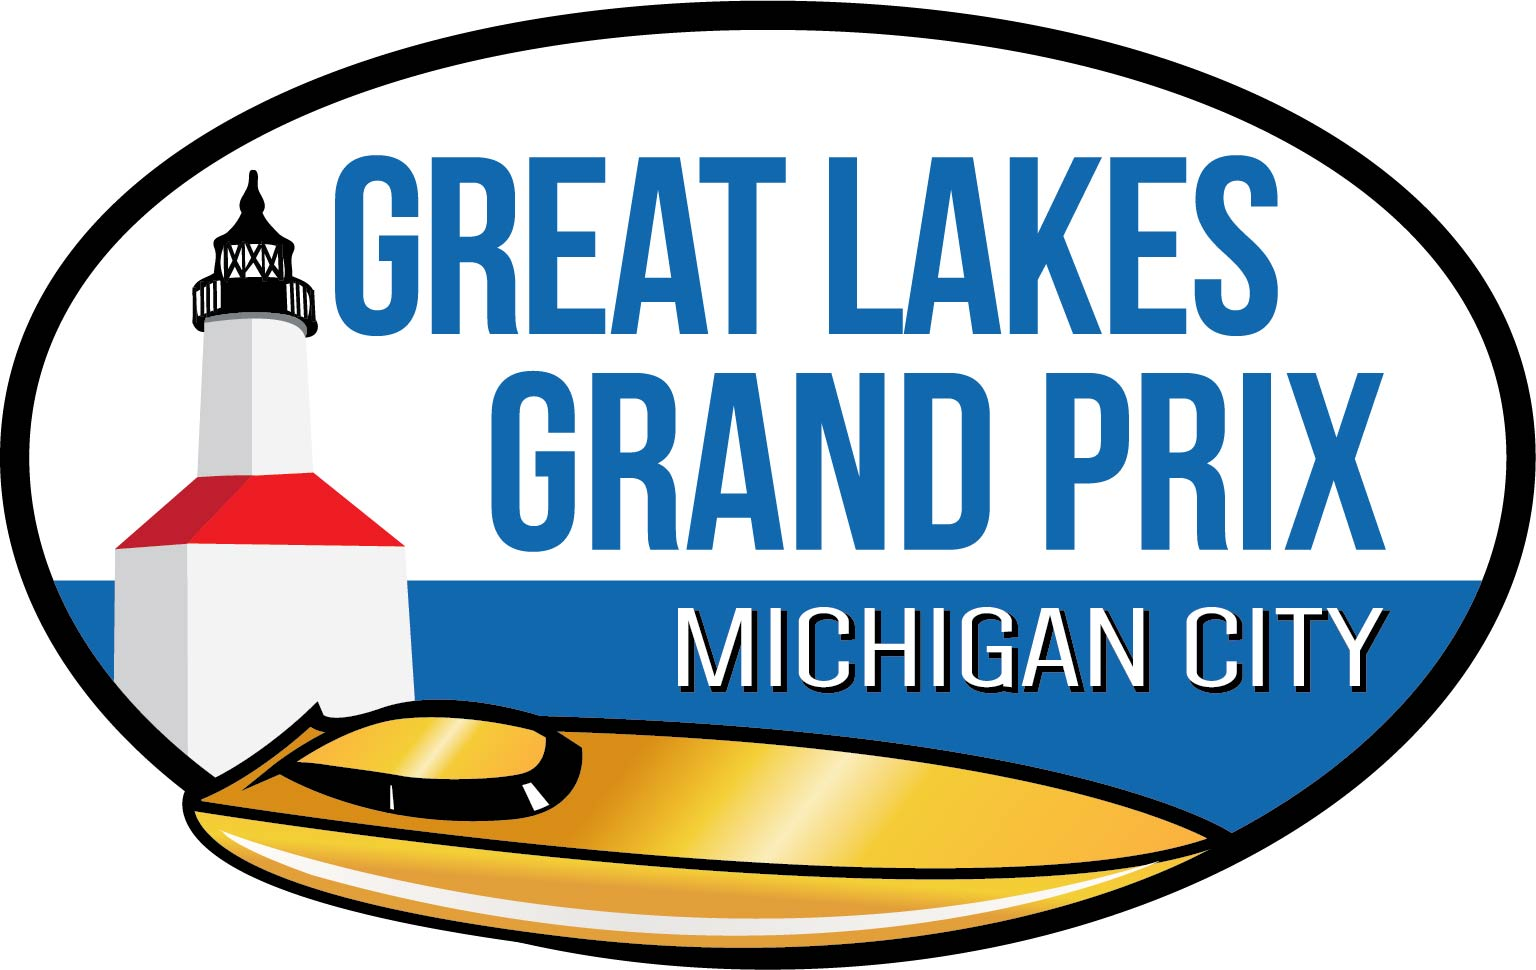 Super Boat Races at the Annual Great Lakes Grand Prix